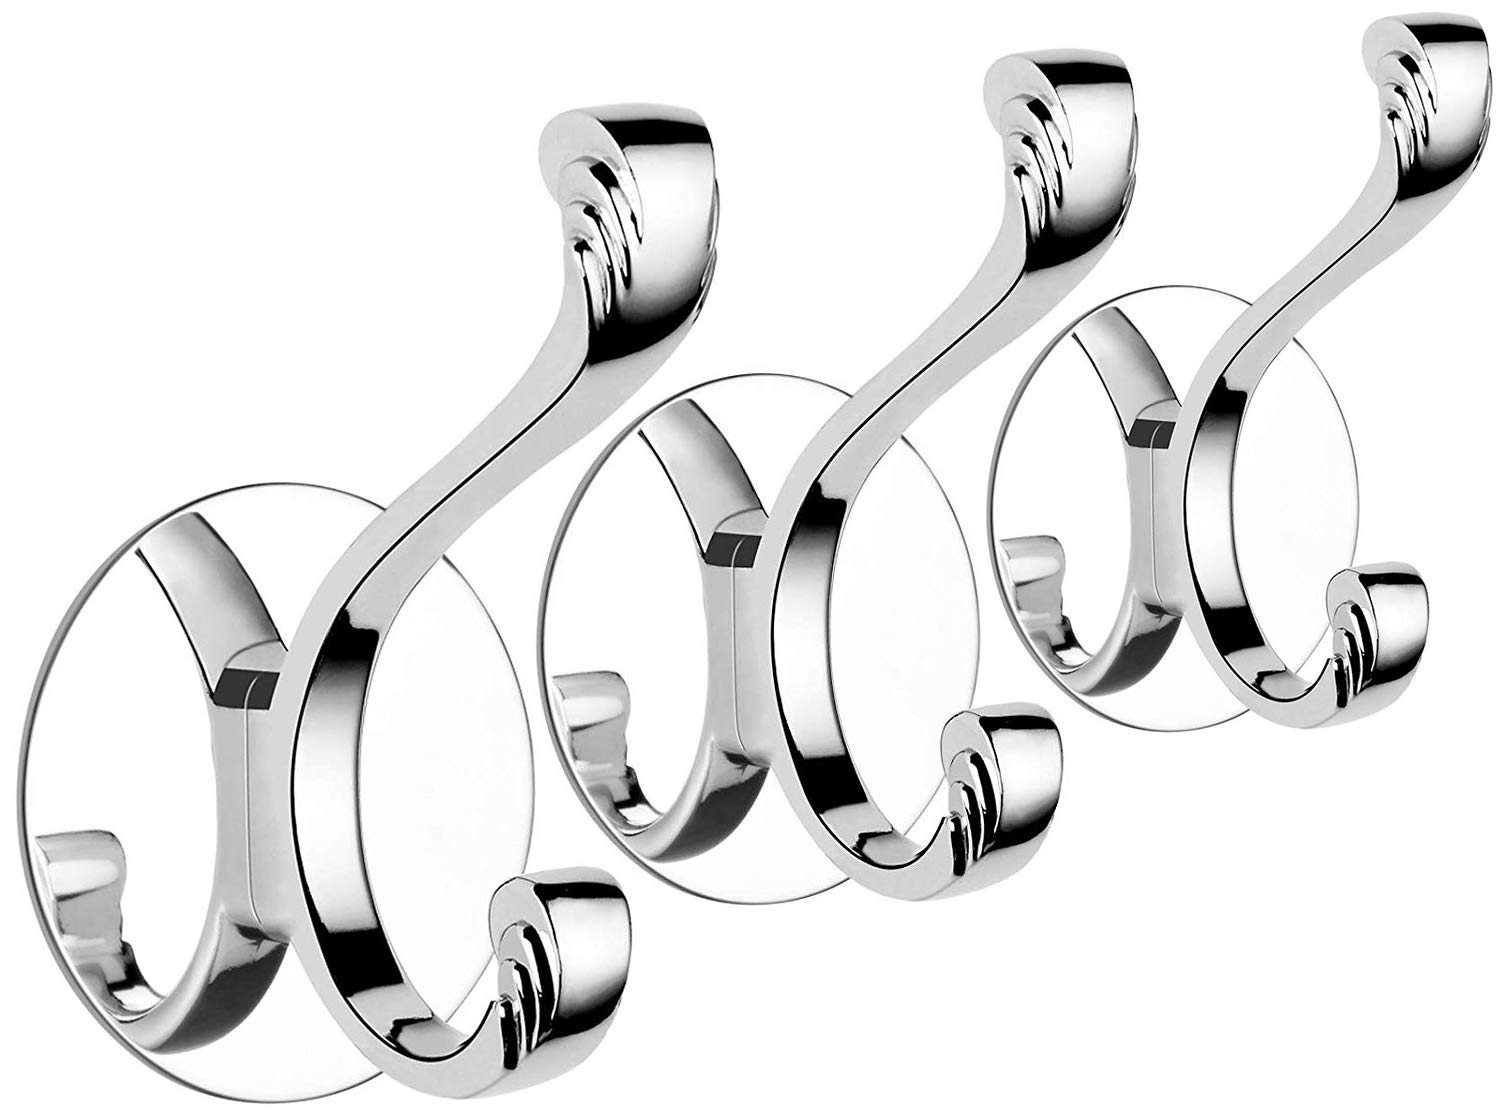 Tensun Robe Hook, Wall Hooks for Hanging Towel Coat Clothes with Glue + 3M Self-Adhesive, 304 Stainless Steel Single Prong Hook for Bathroom Shower Kitchen Closet Garage, Polished Finish